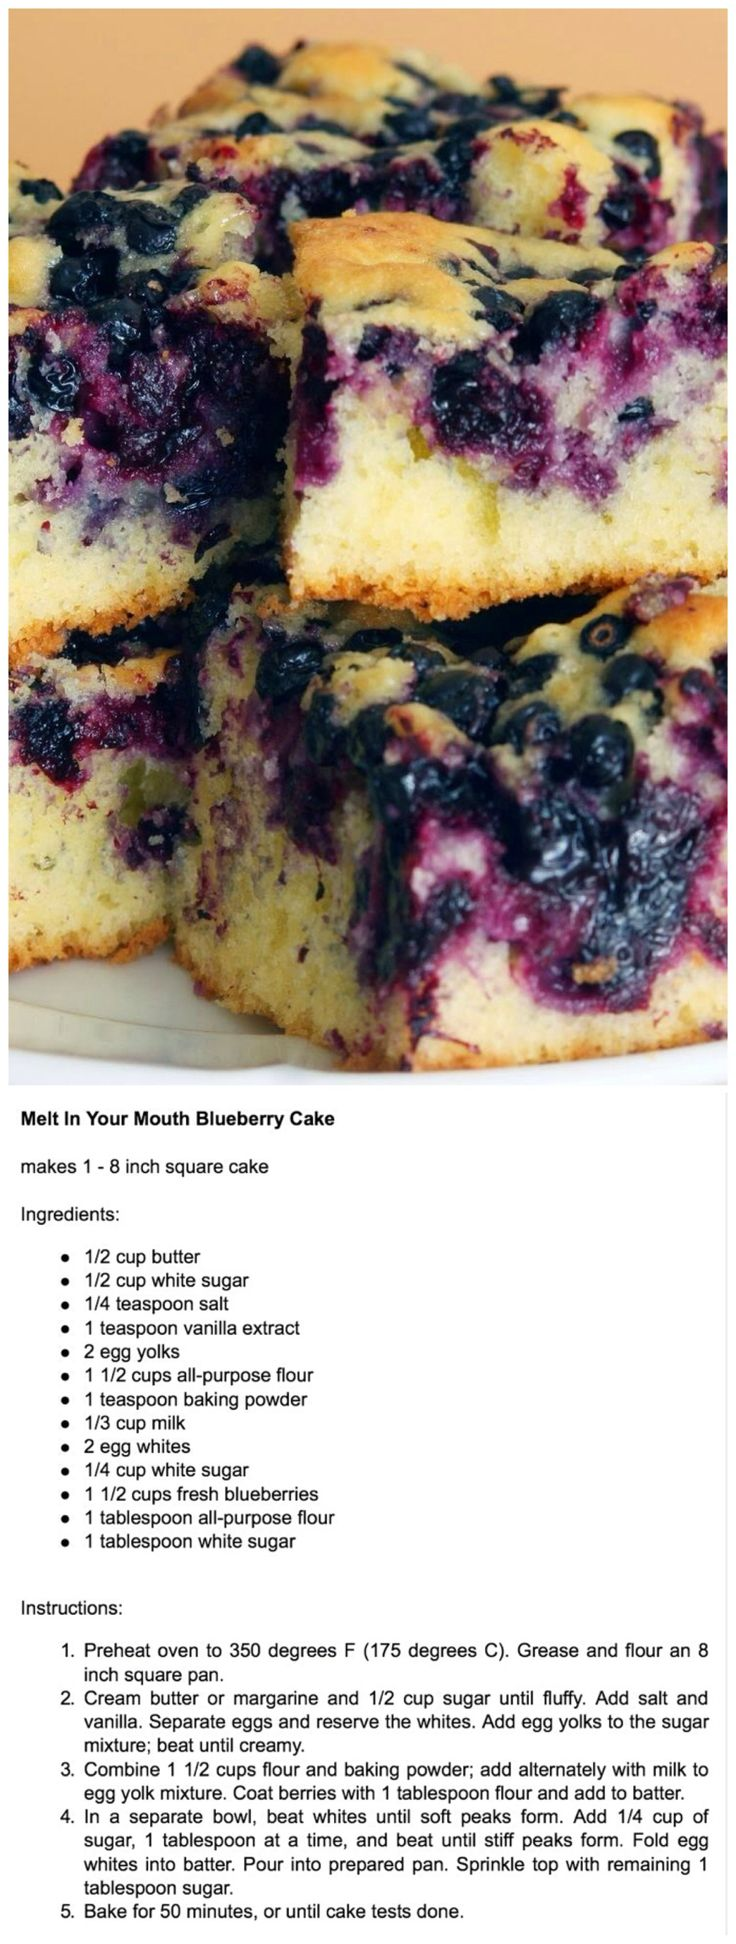 Melt-in-your-mouth Blueberry cake recipe.